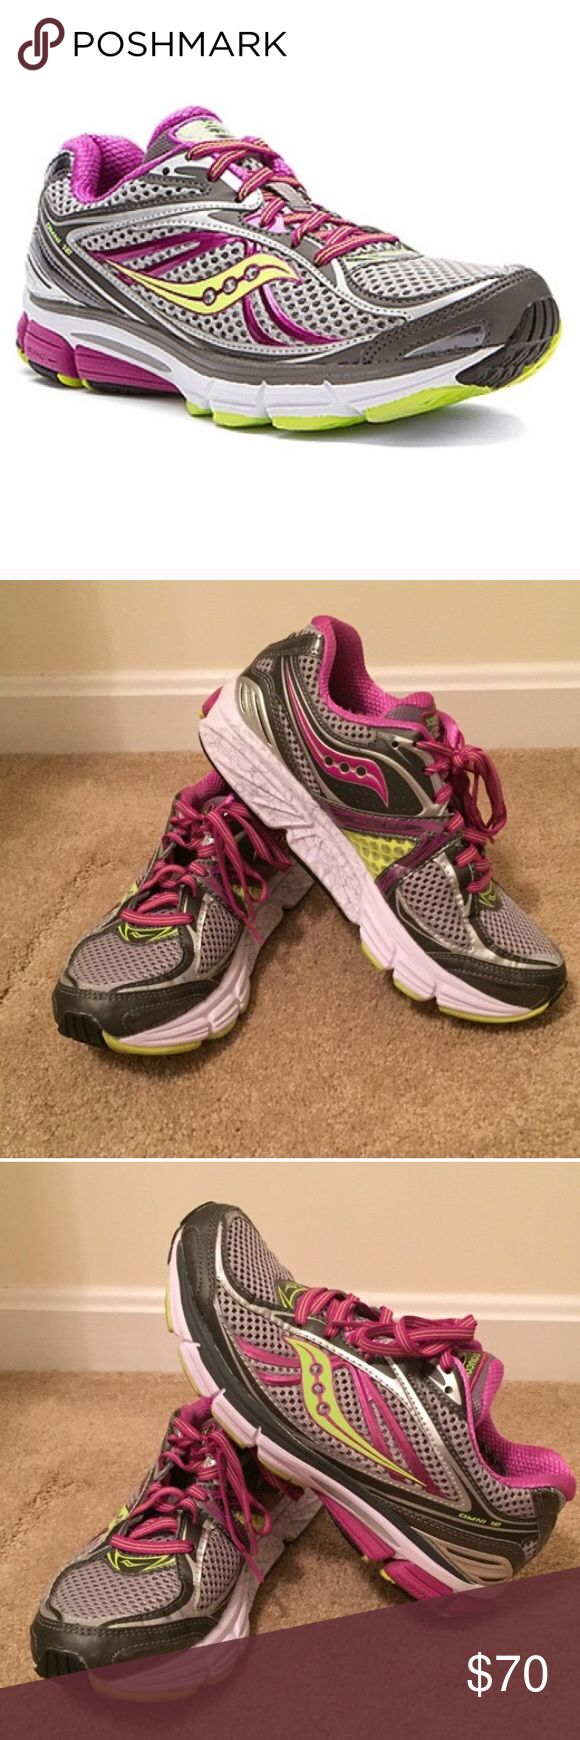 🆕Listing! Saucony Omni 12 Running Shoes Stability is the name of the game with the Saucony Omni 12. This high mileage trainer features a flexible dual density midsole to offer maximum support without impeding on a smooth ride. A cushioned platform protects you from the ground, while a breathable upper offers an excellent fit for lasting comfort. Only worn a handful of times. Still in excellent condition with lots of life left! 🚫TRADES Saucony Shoes